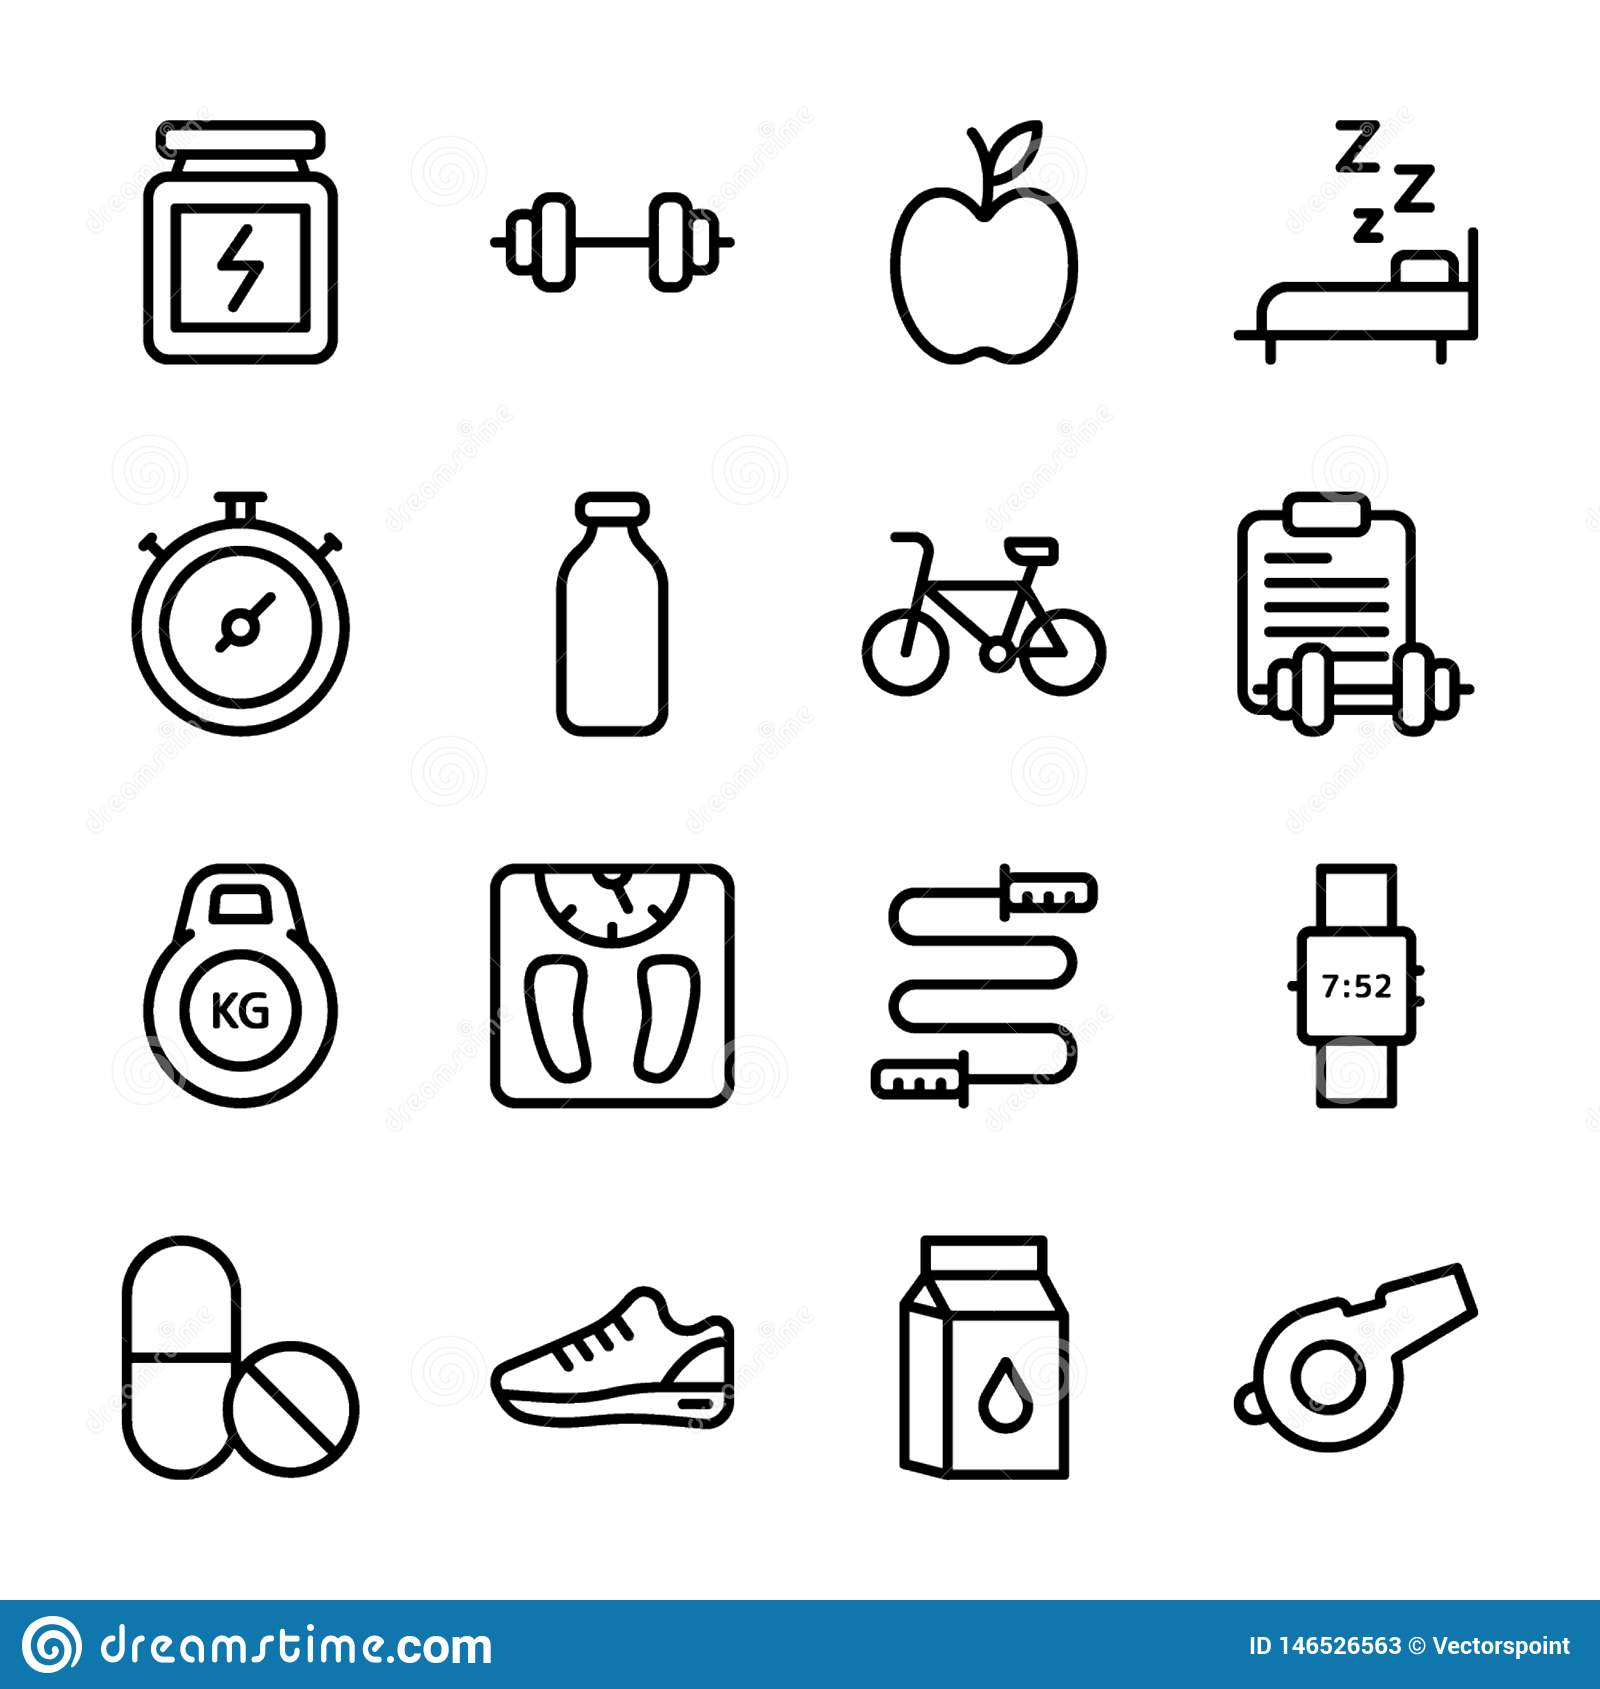 Diet Plan, Sports Supplement, Nutrition Icons Pack